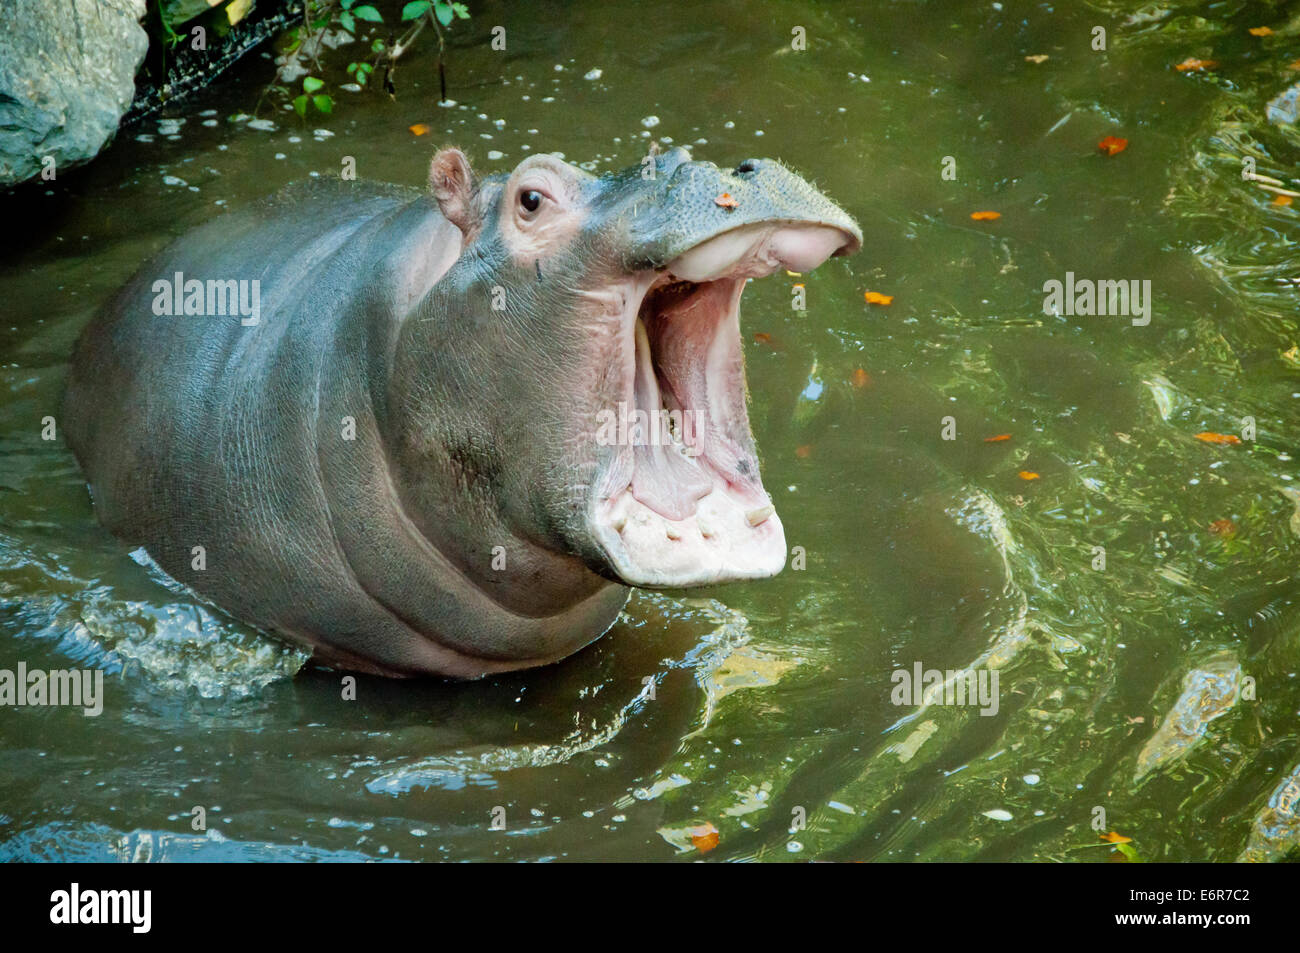 Hippopotamus with mouth wide open - Stock Image